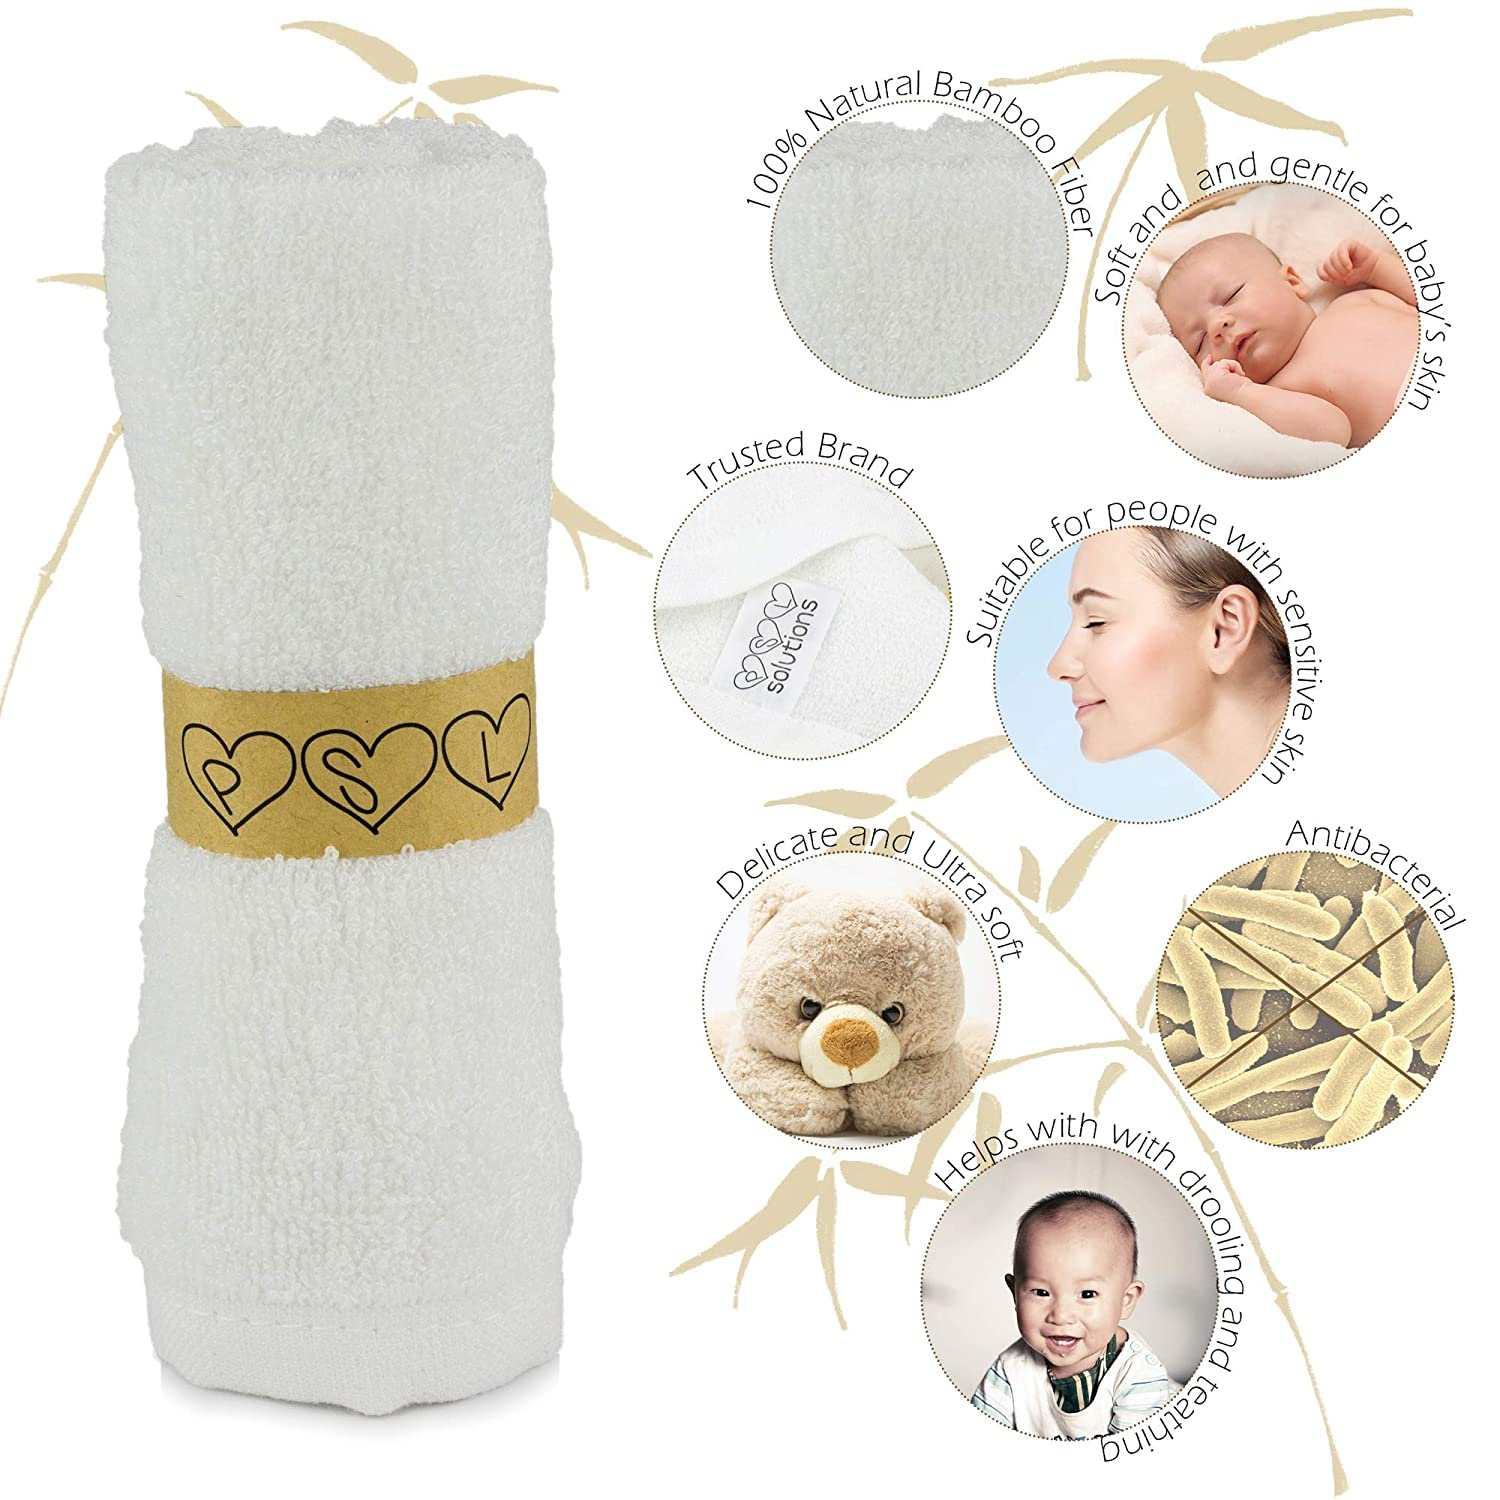 Perfect Baby Shower Gift by PSL Solutions Premium Quality Ultra Soft Luxury Baby Bath Towel Set Suitable for Sensitive Skin PSL Naturally Organic Bamboo Washcloths